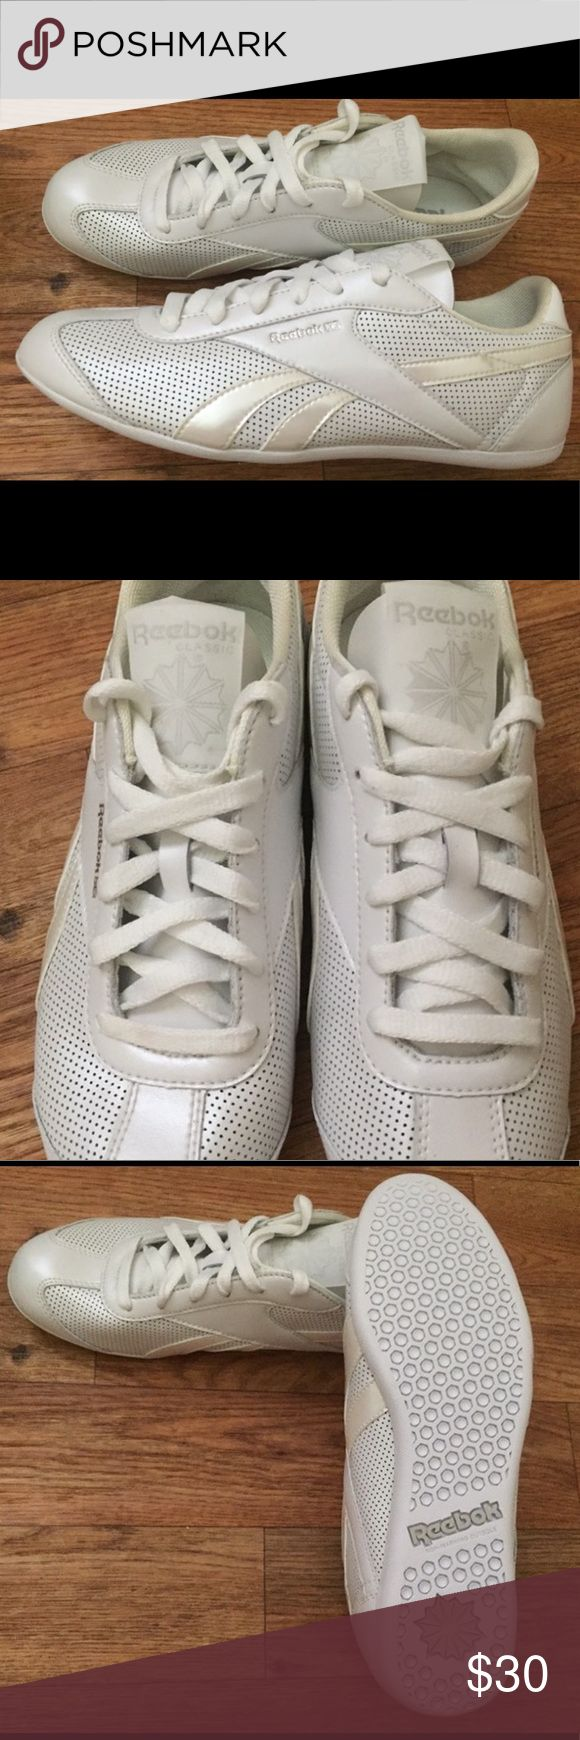 Reebok Cheer Shoes sz8 NEW NWOT women's size 8 white shoes. I believe these are cheer shoes, but I cannot find the style name on google. They come from a smoke free home and have never been worn. Reebok Shoes Athletic Shoes